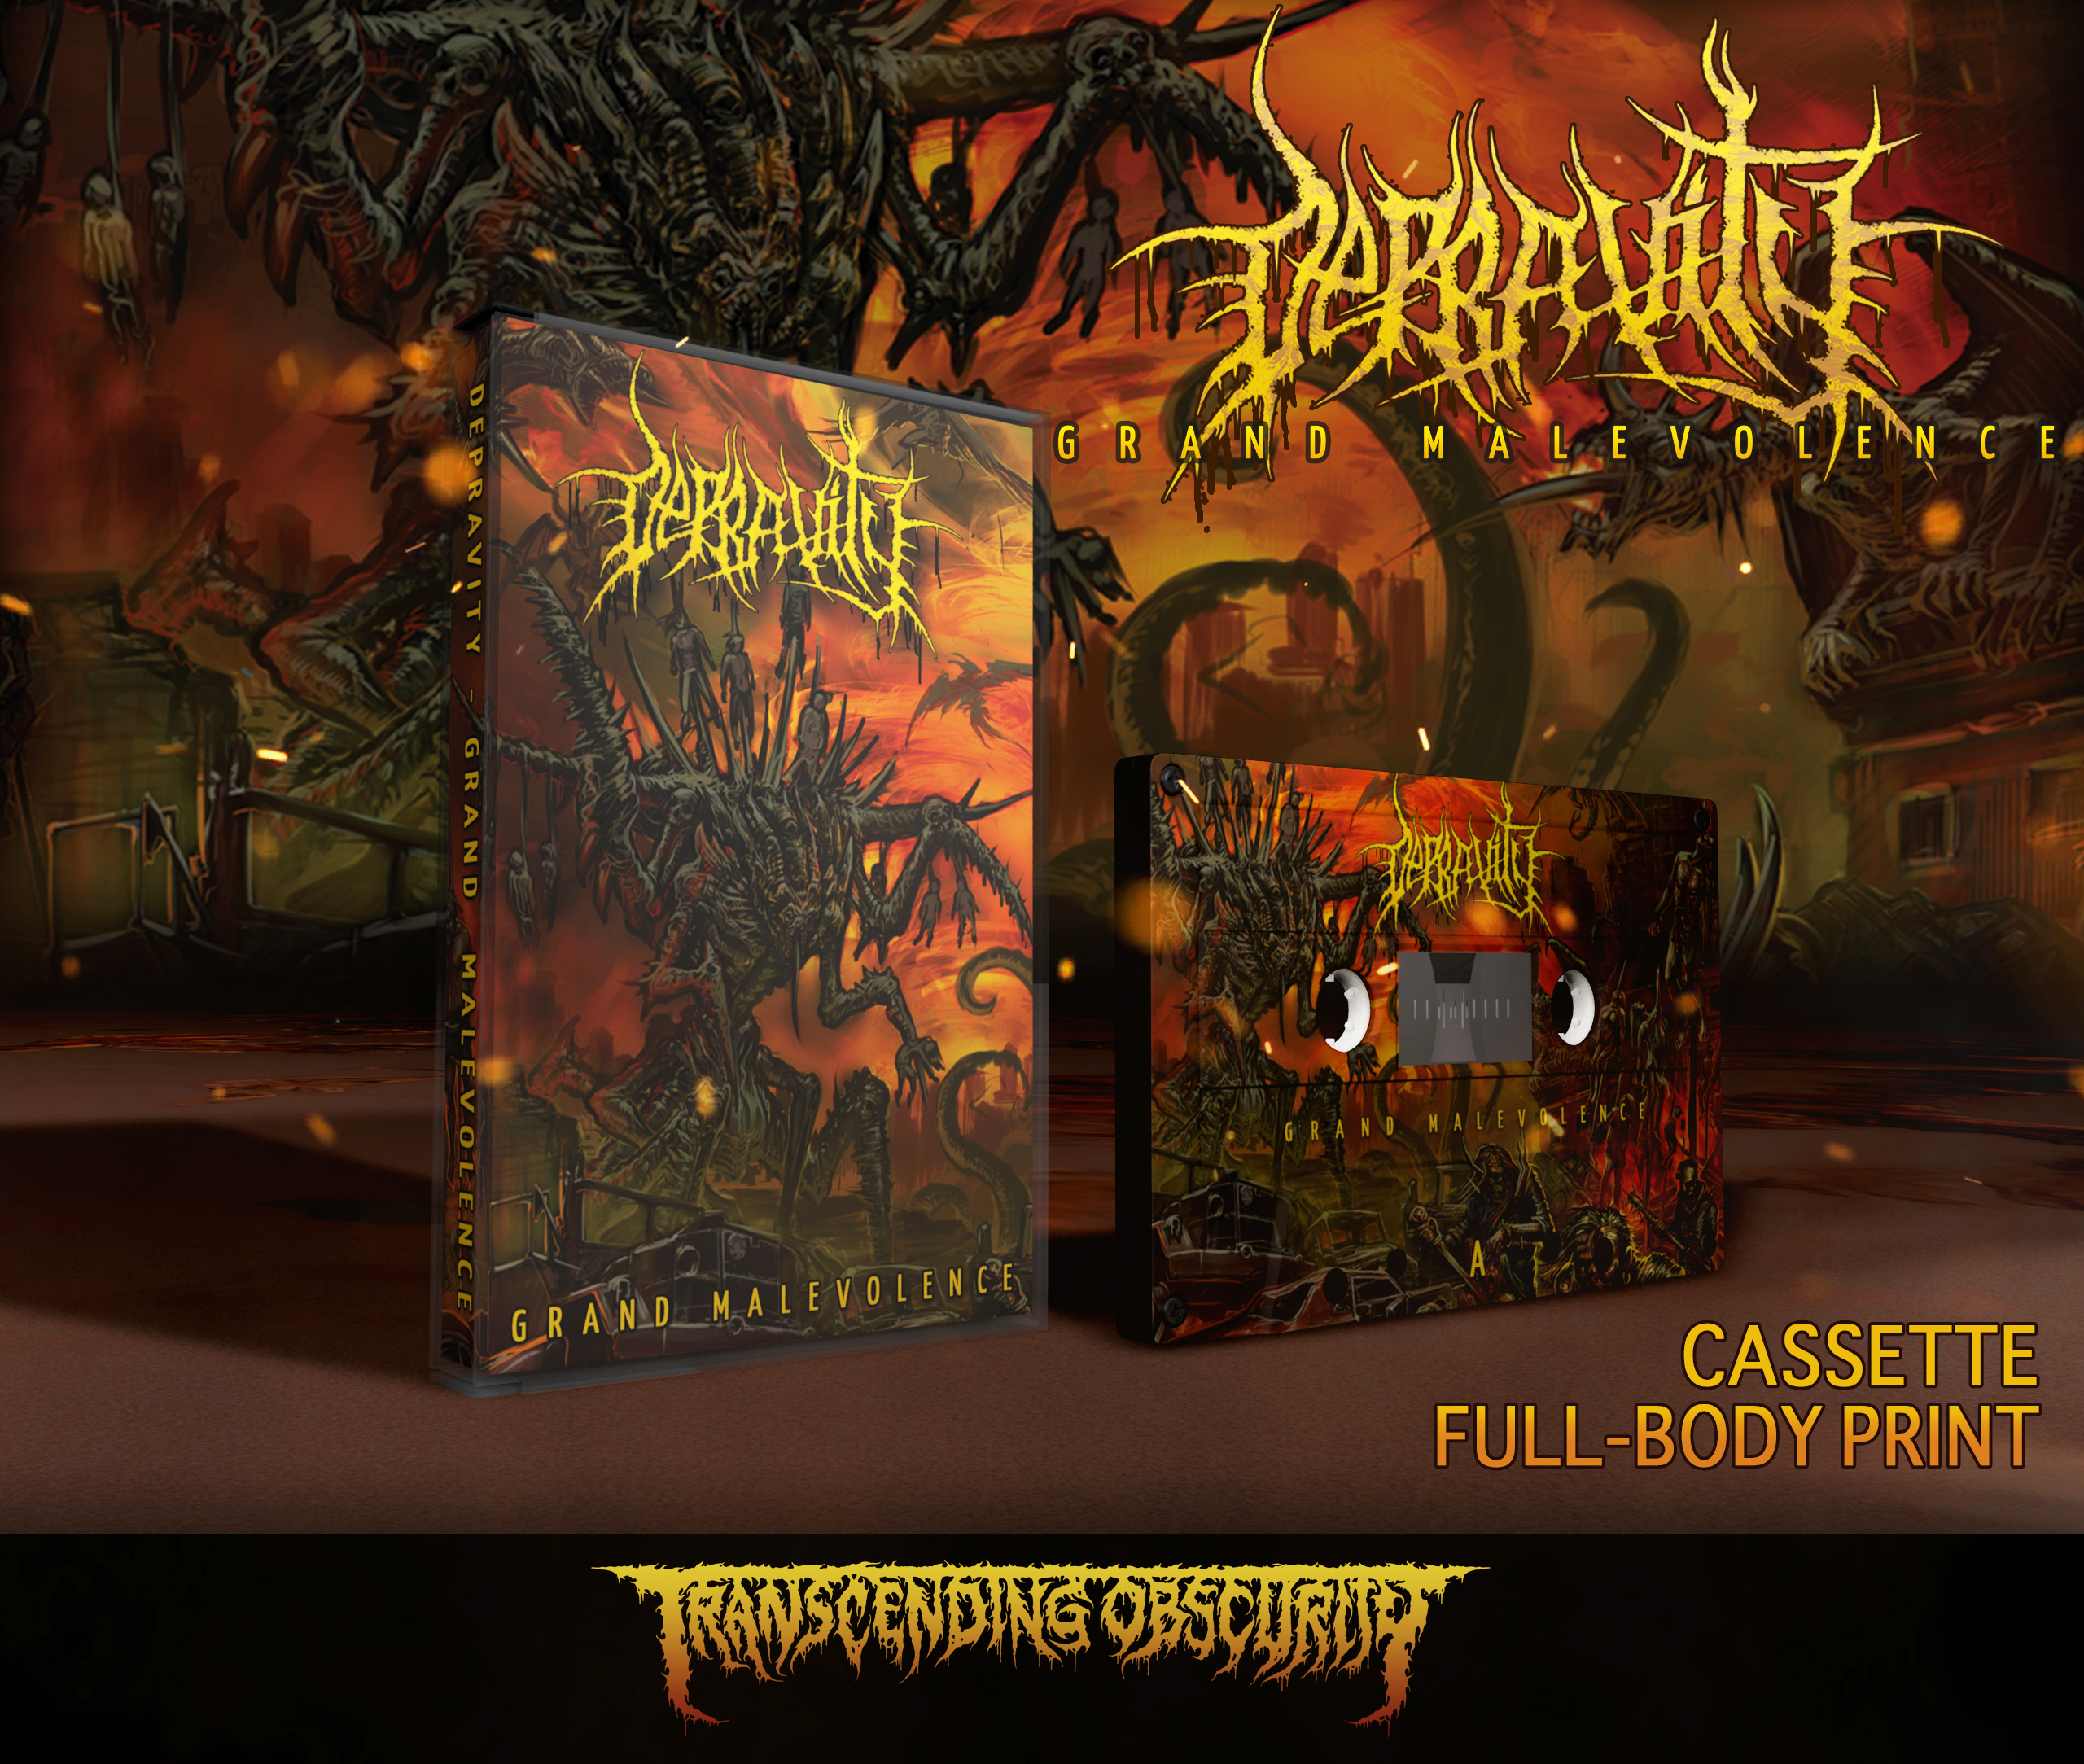 DEPRAVITY (Aus) - Grand Malevolence Full Body Print Cassette (Limited to 50)